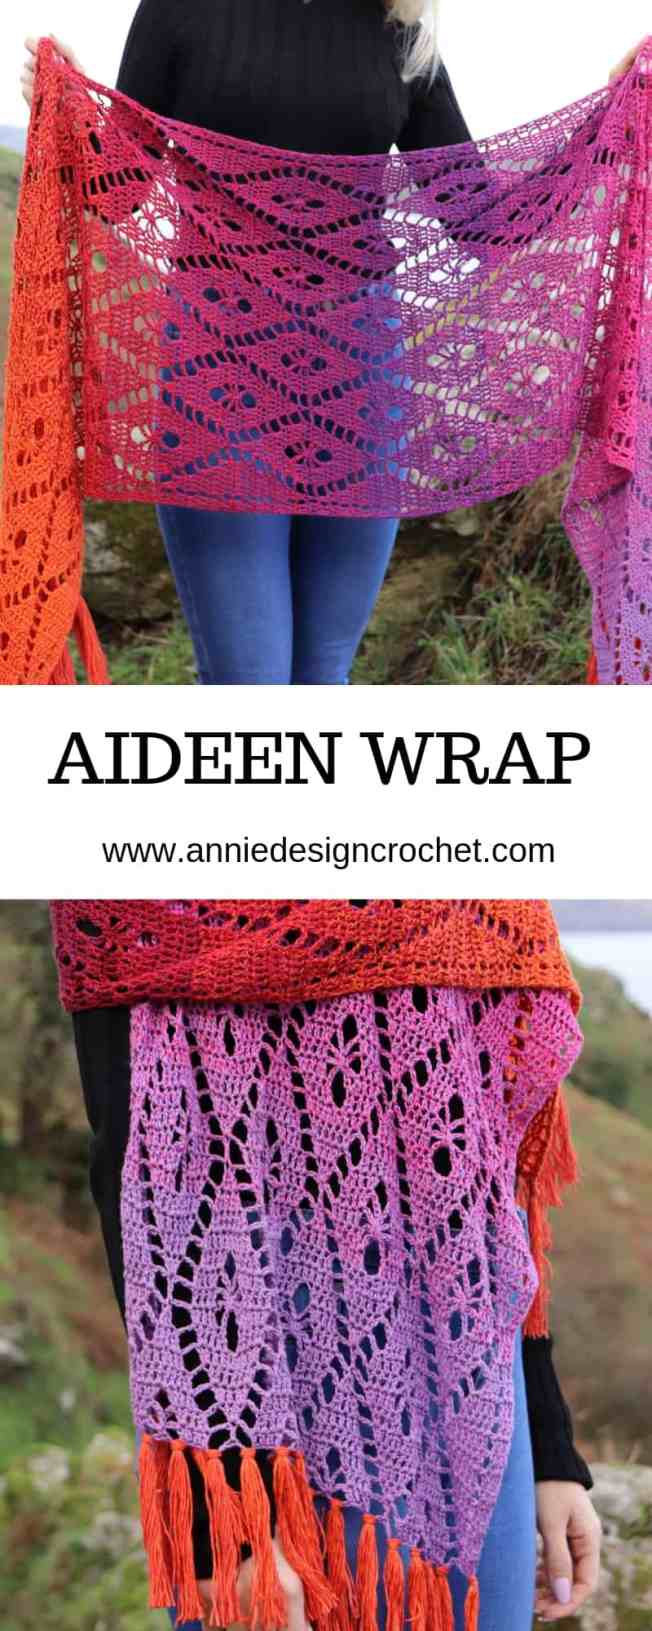 Crochet shawl made in Scheepjes Whirl from Annie Design